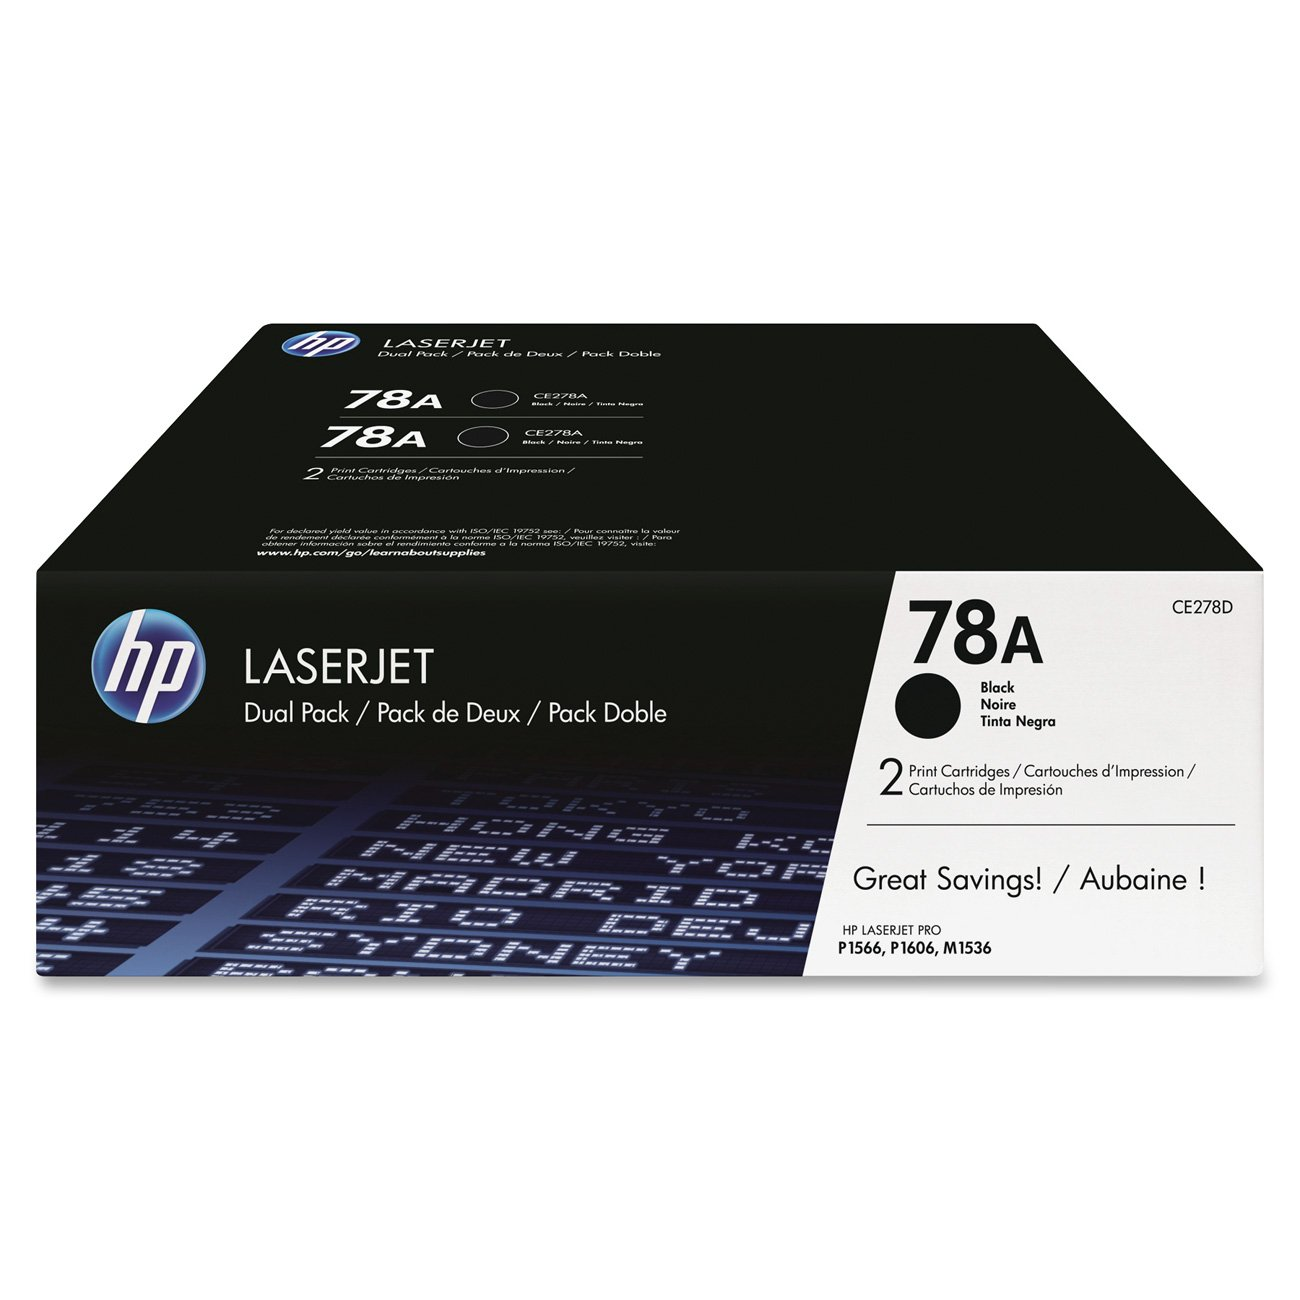 HP 78A (CE278A) Black Toner Cartridge, 2 Toner Cartridges (CE278D)